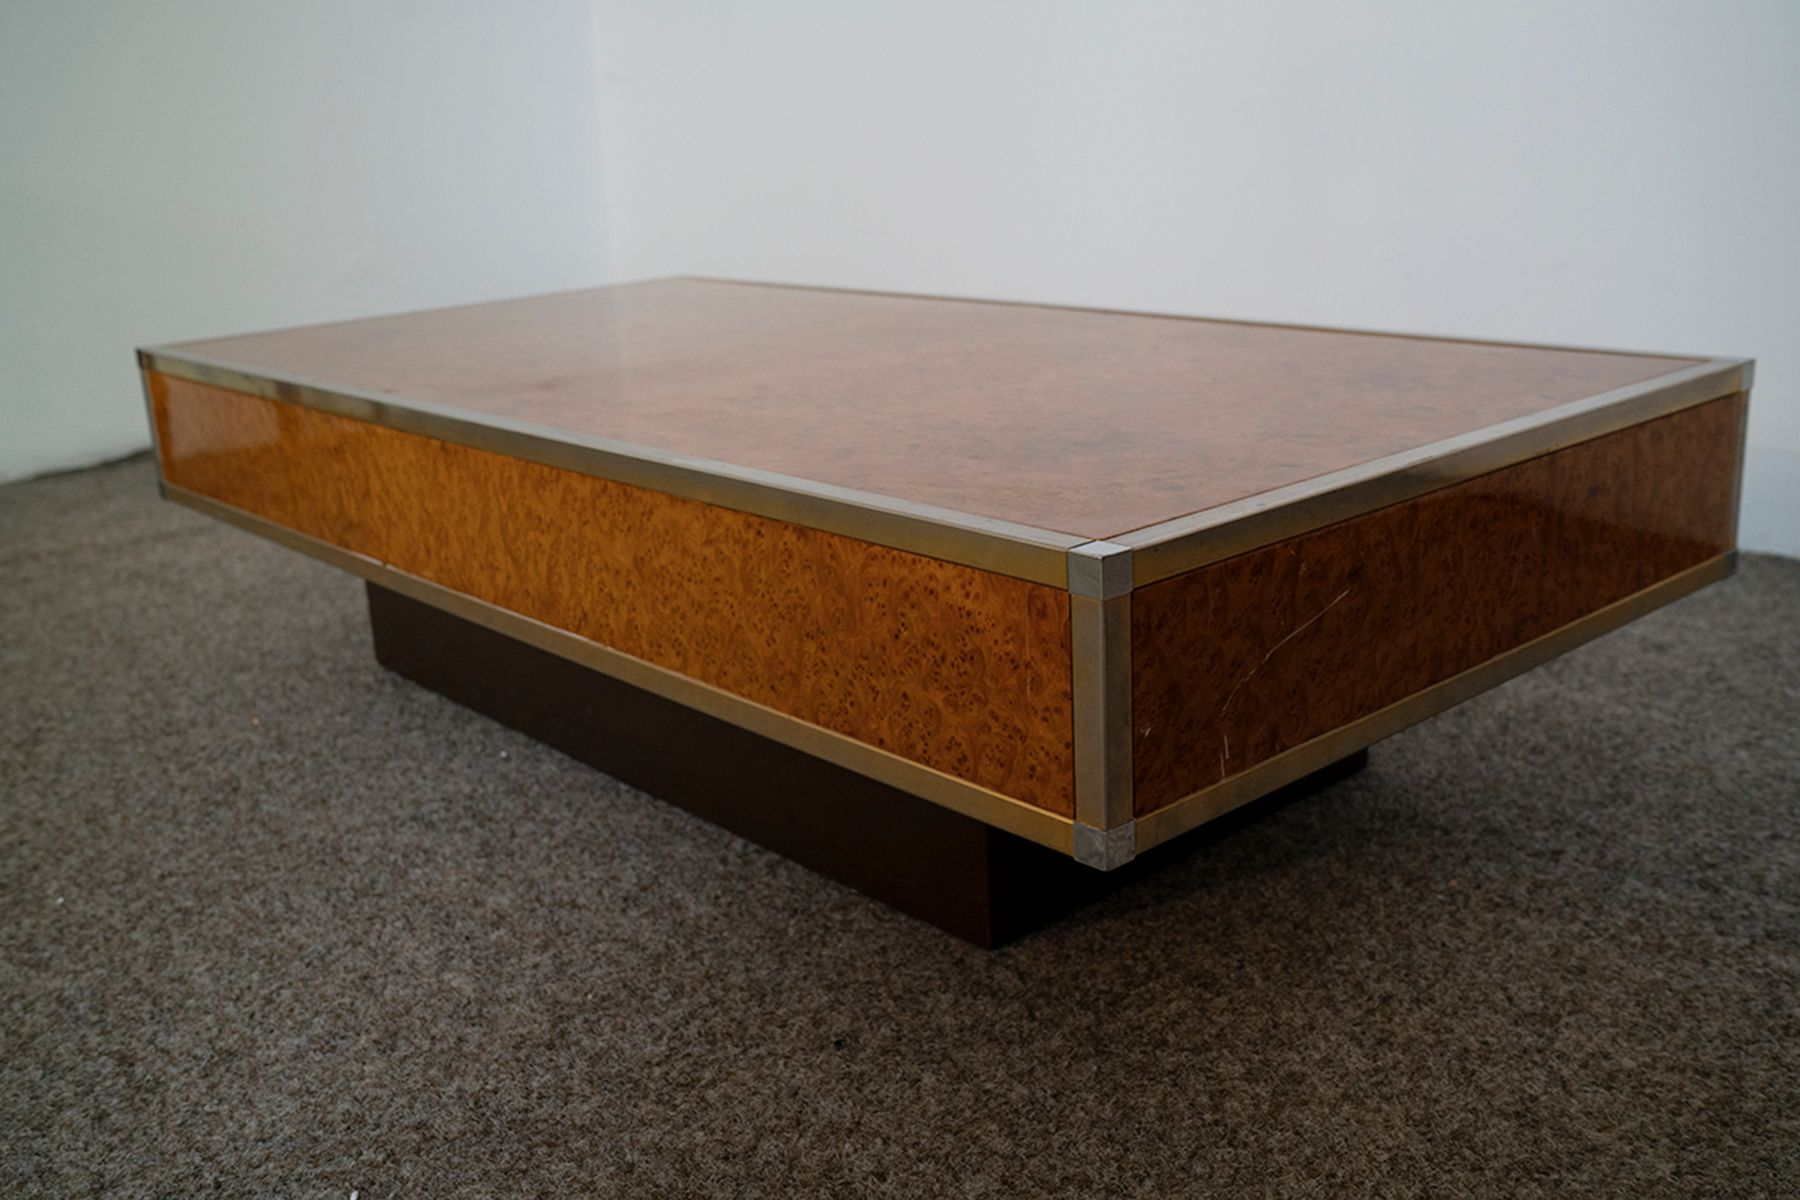 Low Coffee Table in Burl Maple 1970s for sale at Pamono